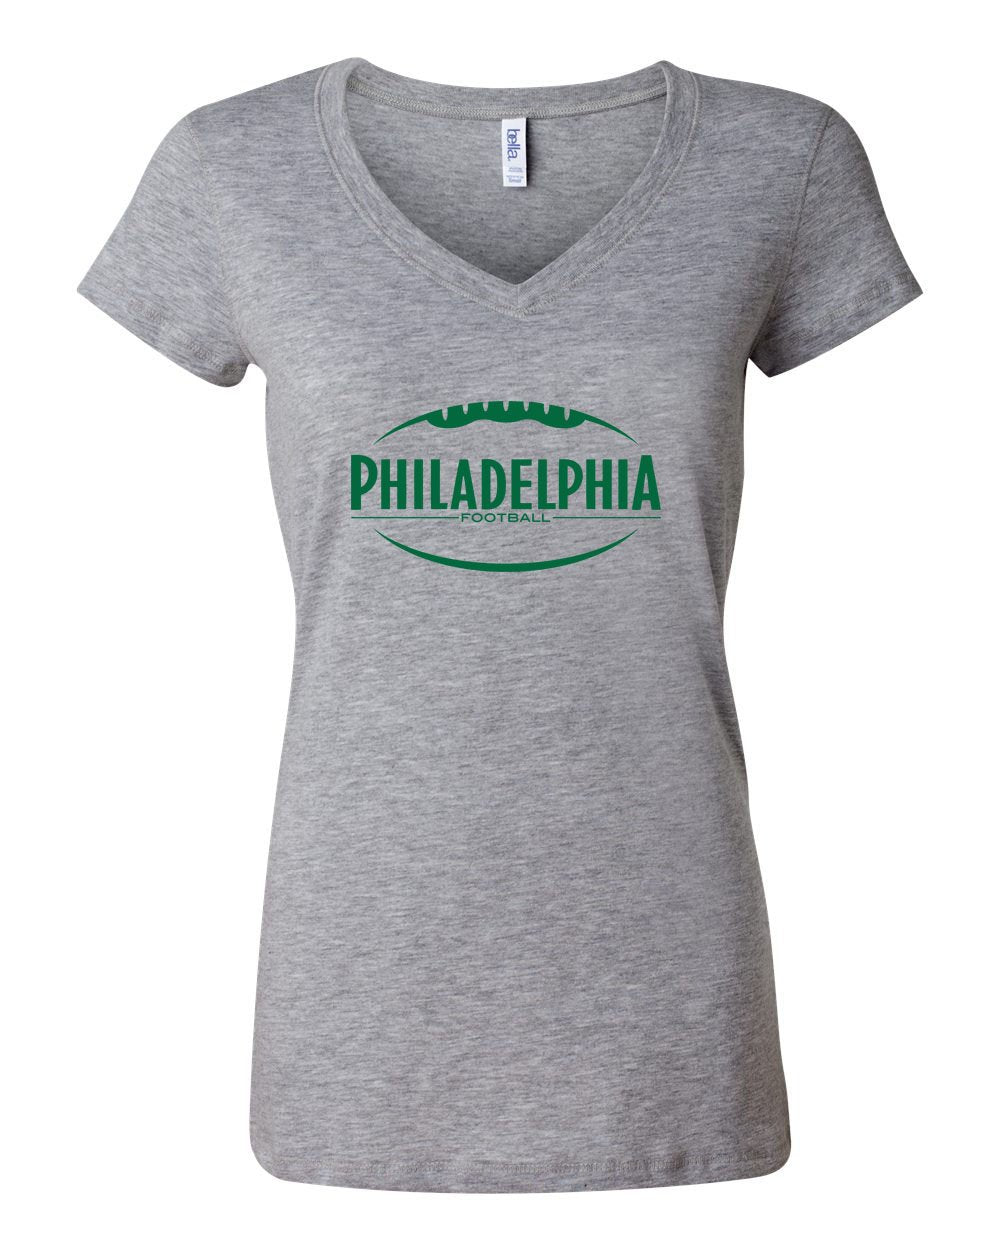 Philadelphia Football LADIES Junior Fit V-Neck